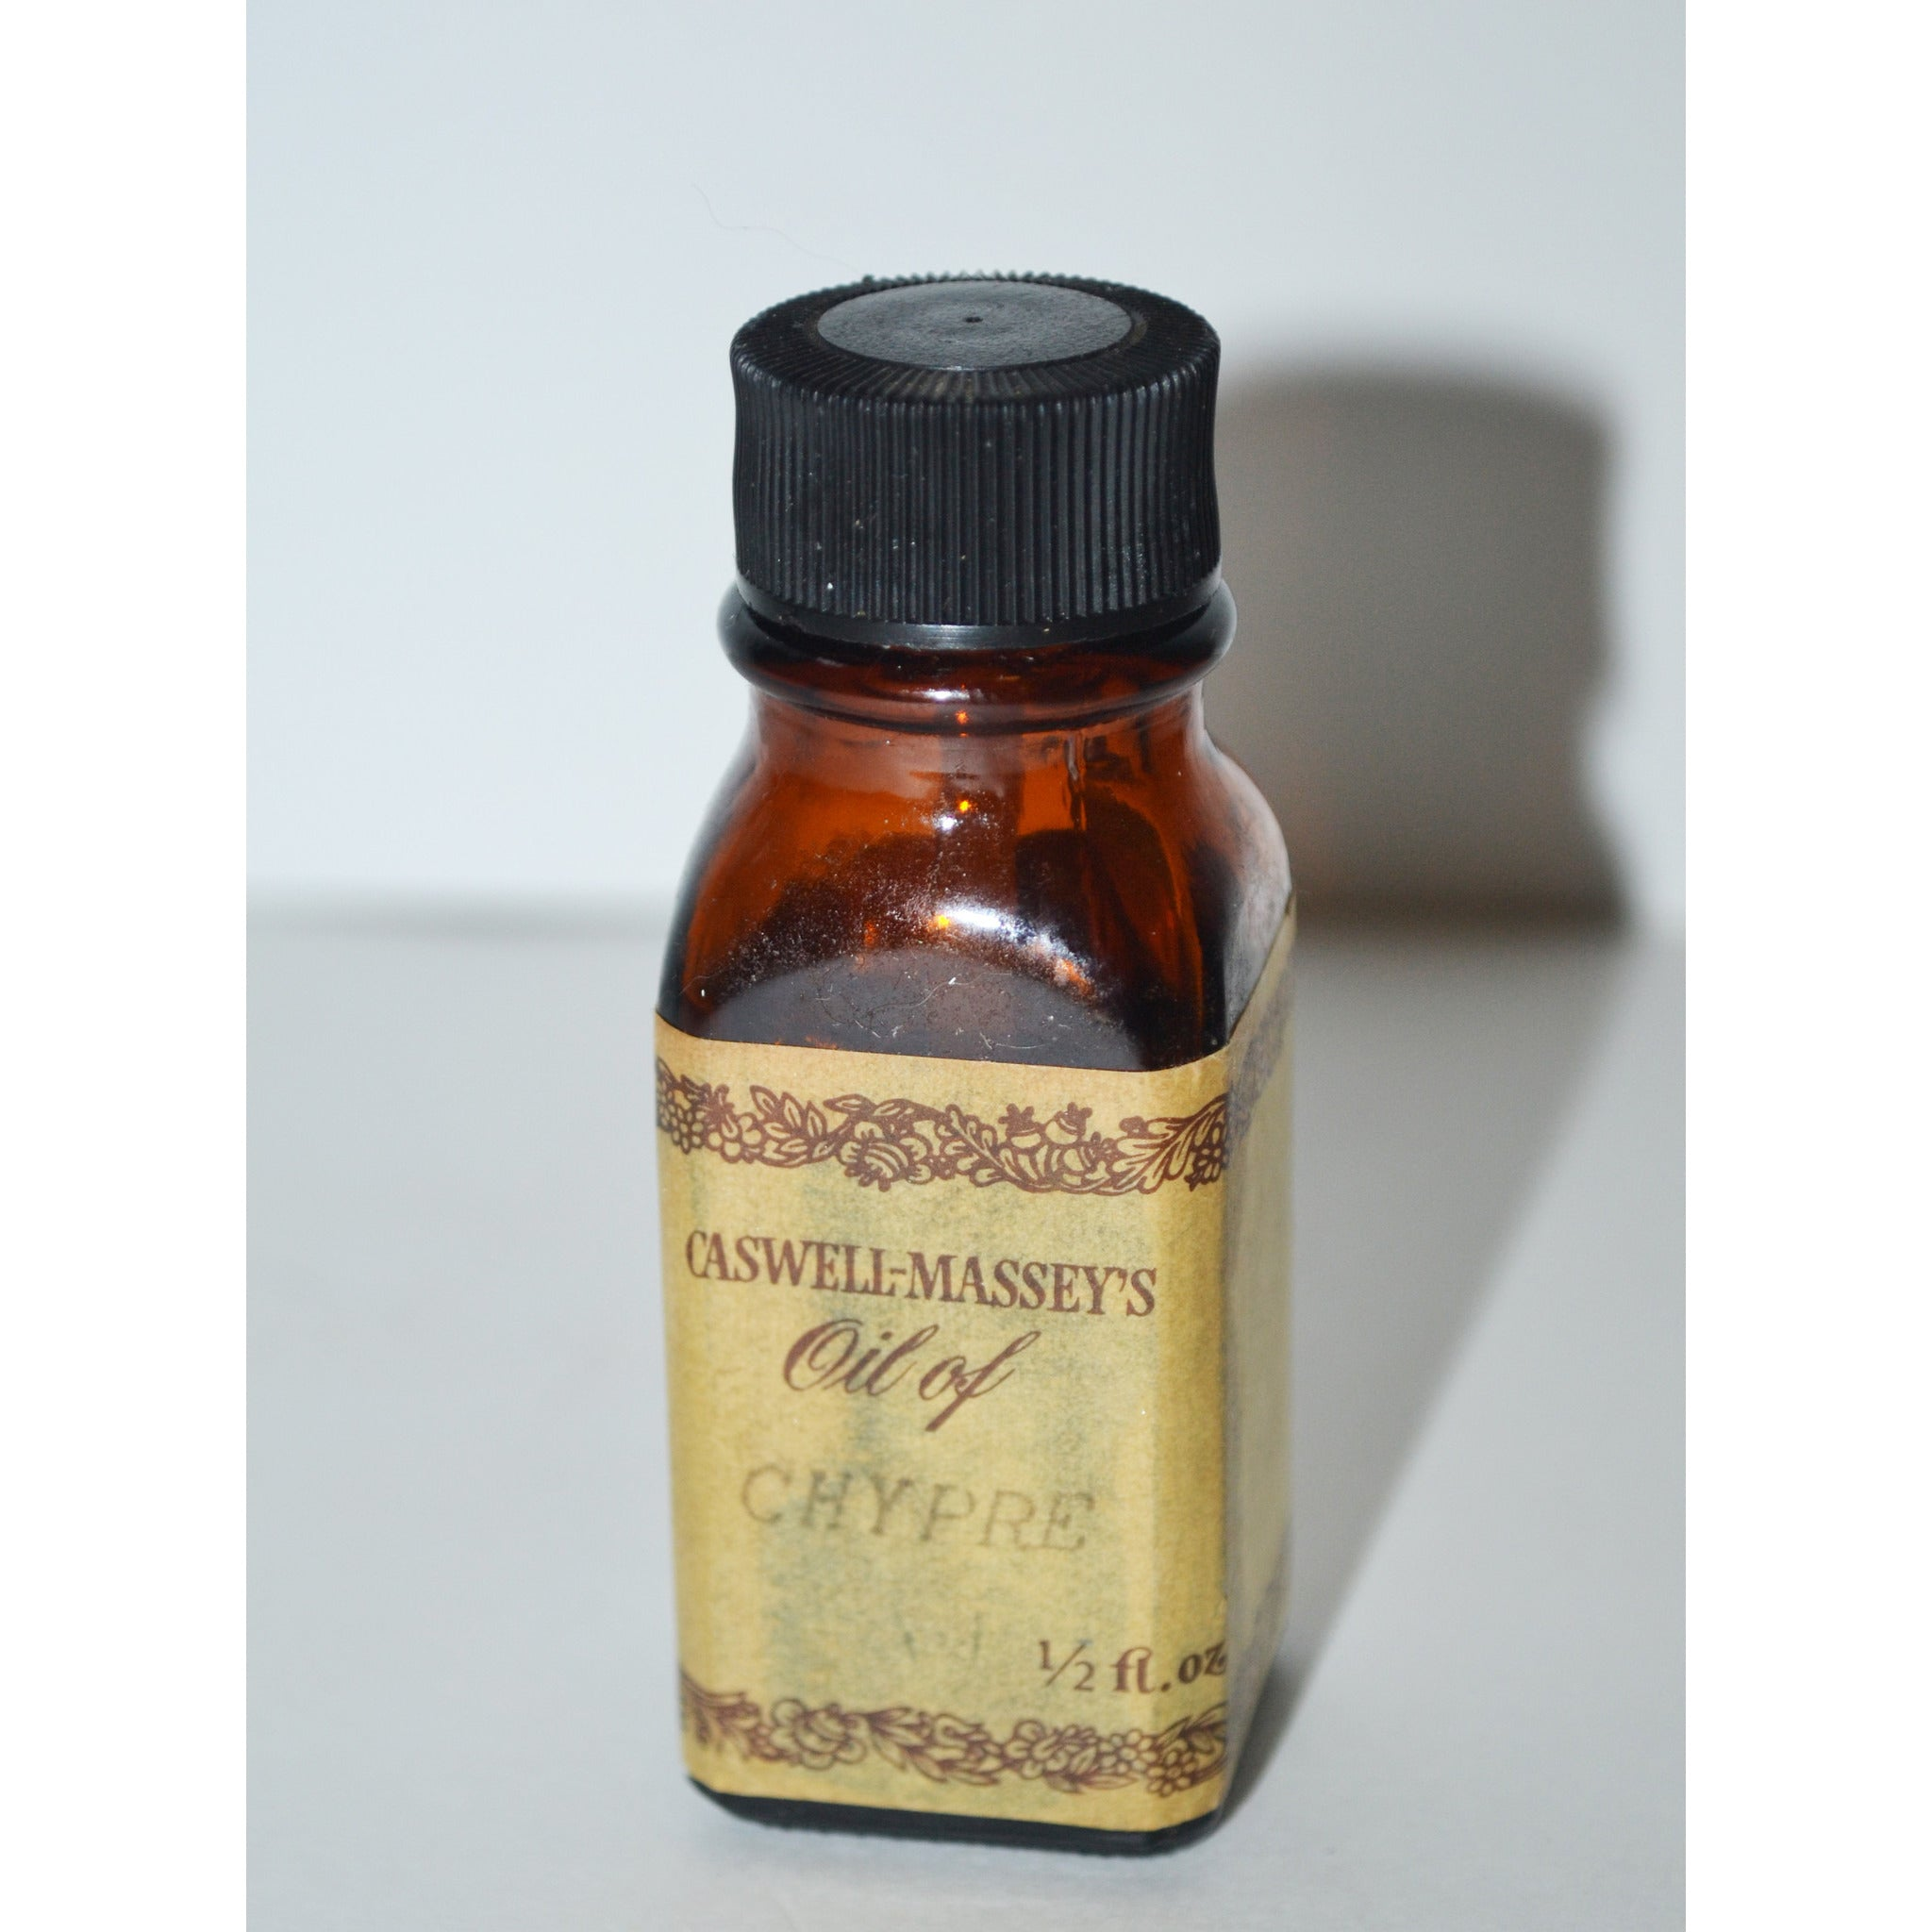 Vintage Chypre Oil By Caswell-Massey